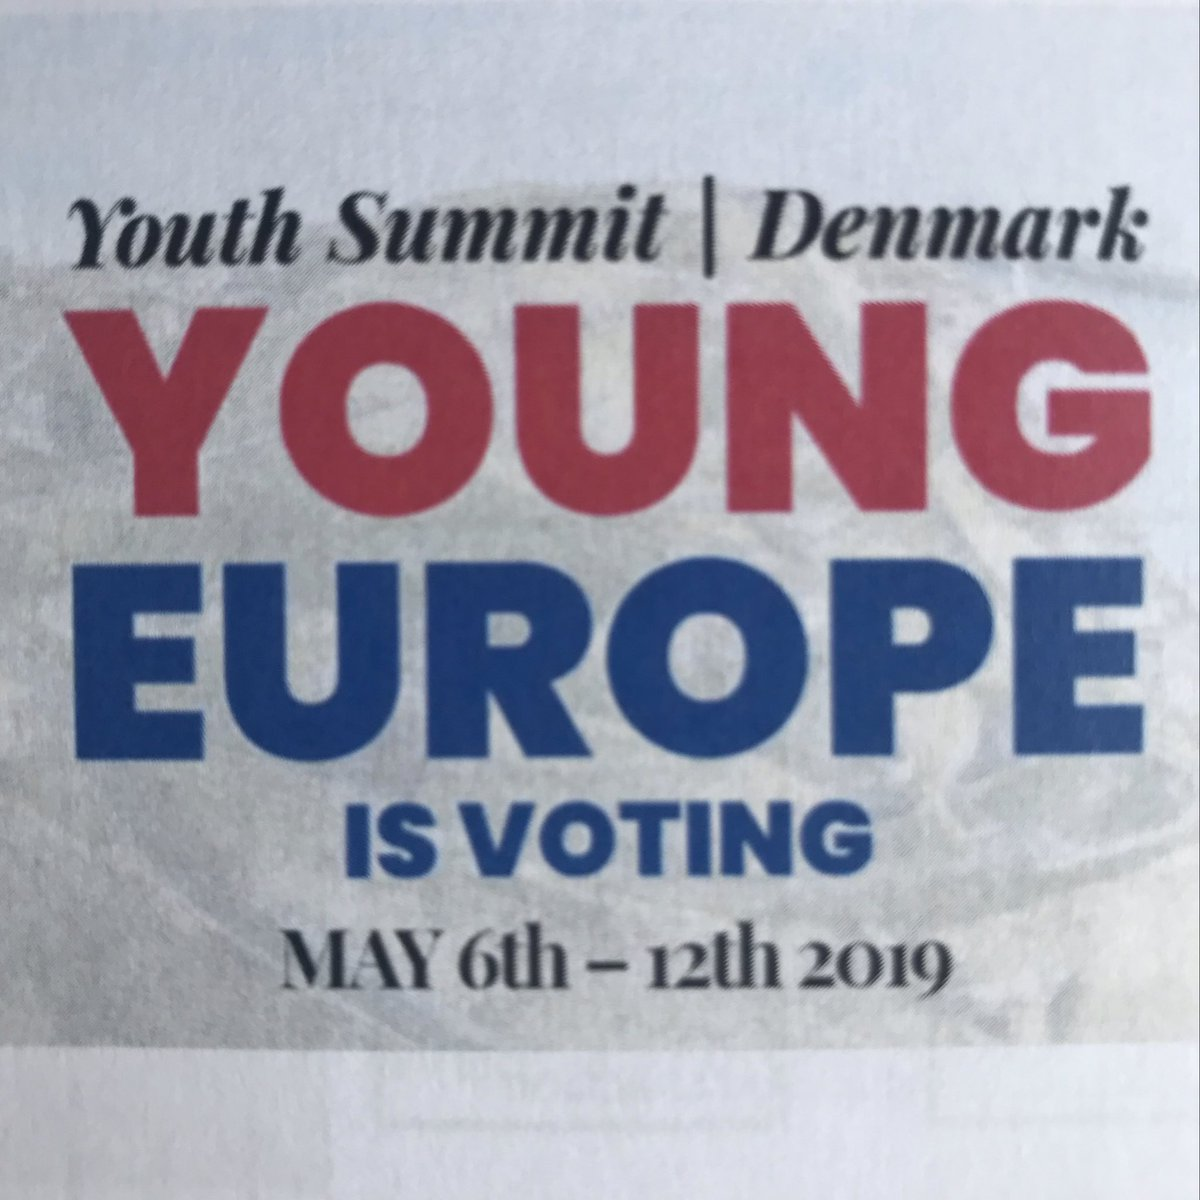 Voting is power! Looking forward to youth summit #YoungFuture @YoungEuVote at #YouthIsland Copenhagen #FutureOfEurope